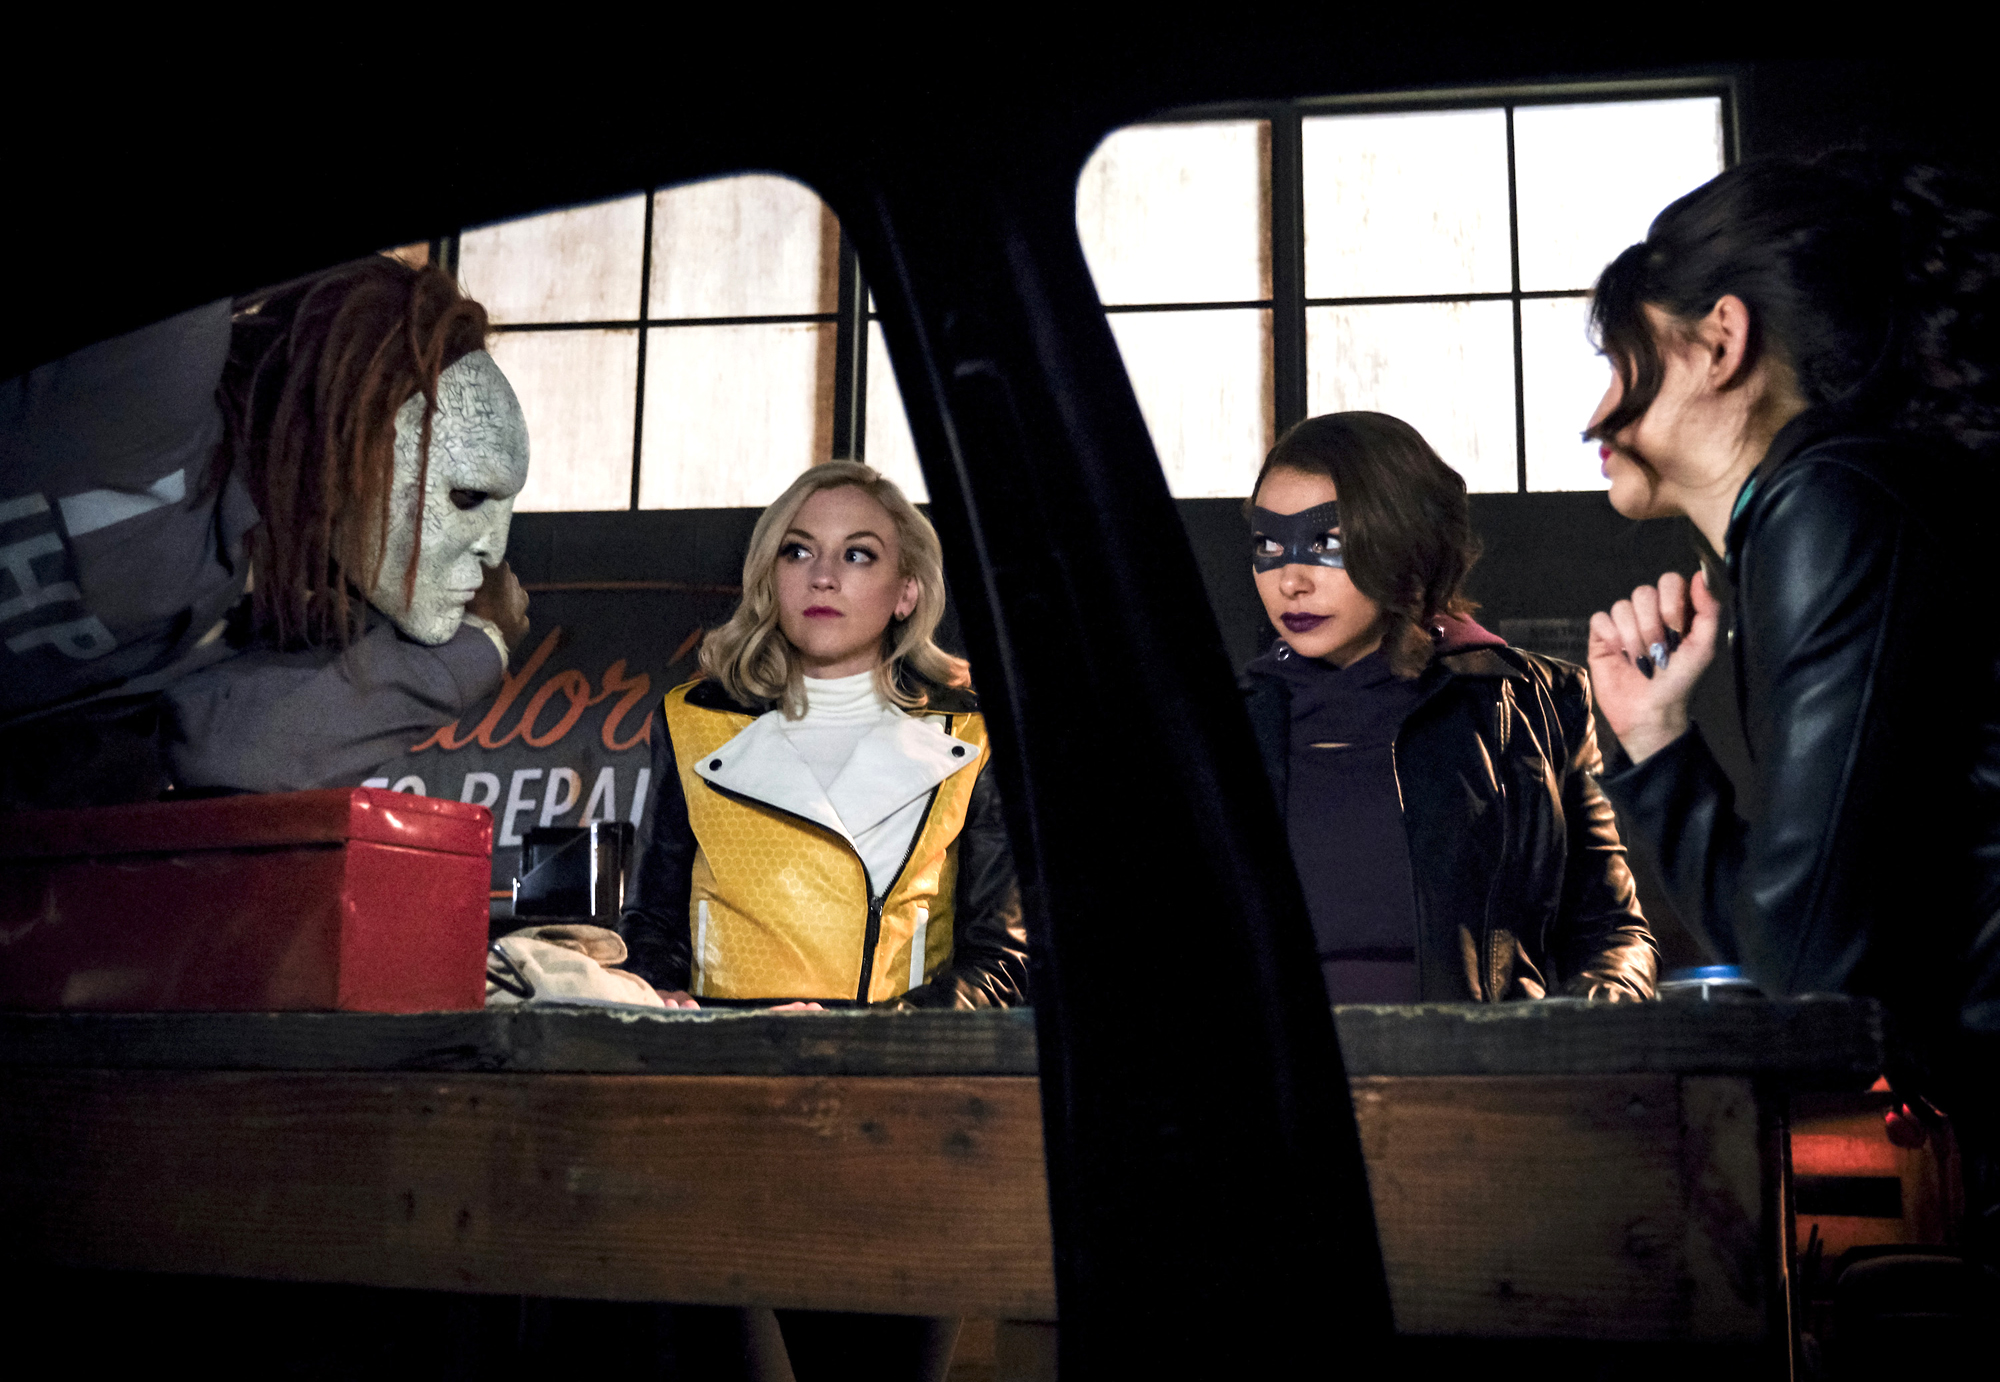 "The Flash -- ""Gone Rogue"" -- Image Number: FLA520a_0363b.jpg -- Pictured (L-R): Rag Doll, Emily Kinney as Brie Larvan, Jessica Parker Kennedy as Nora and Reina Hardesty as Joss/Weather Witch -- Photo: Jeff Weddell/The CW -- © 2019 The CW Network, LLC. All rights reserved"